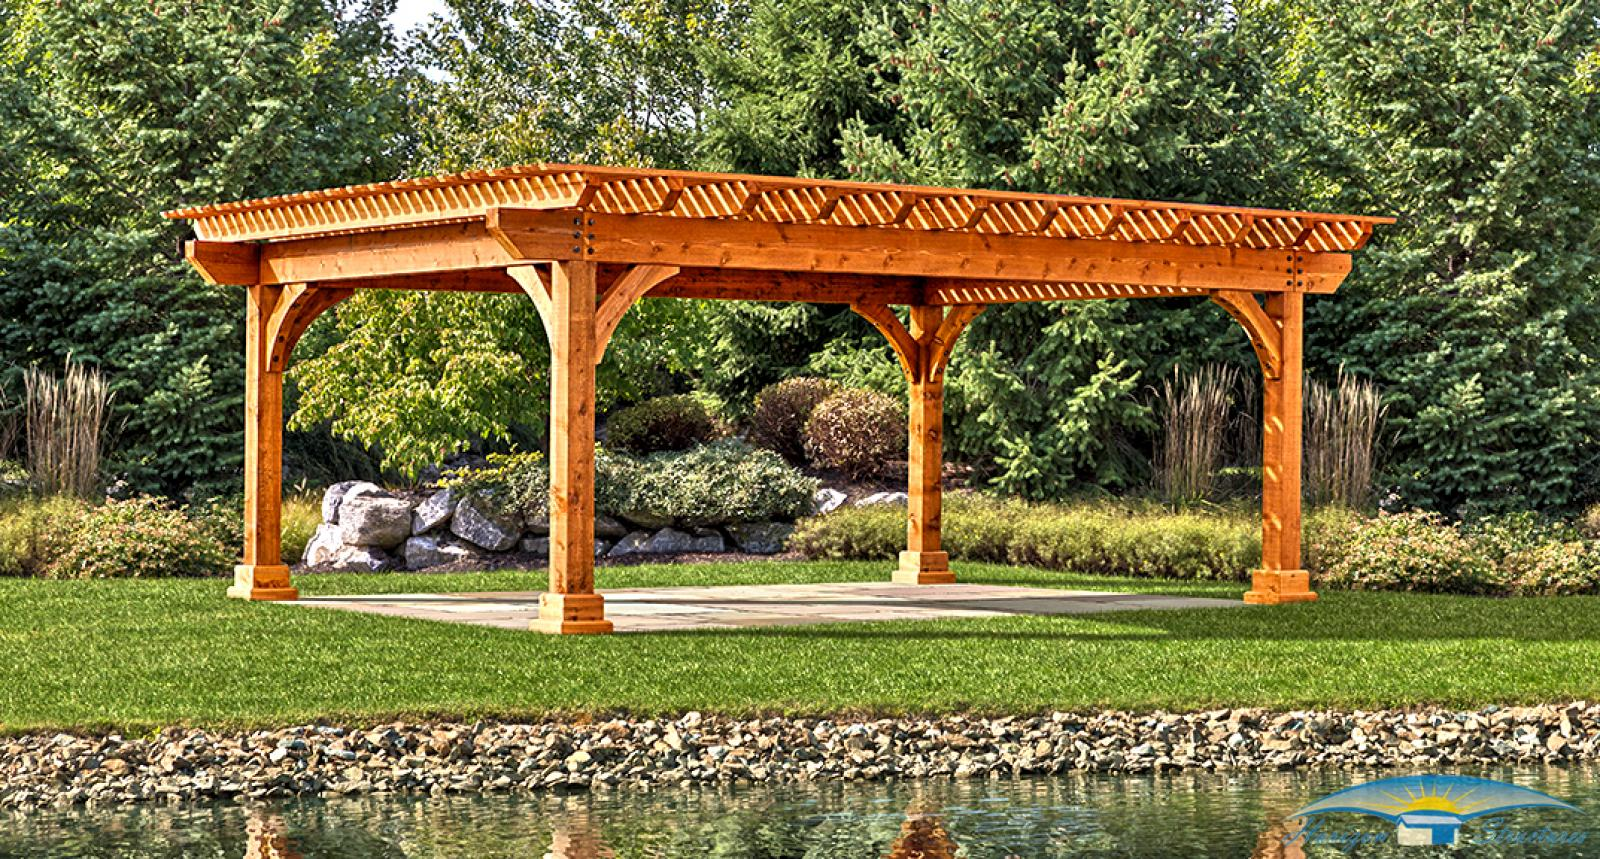 Gazebo Adelaide Perfect Pergolas Design For Garden Covering In Adelaide August